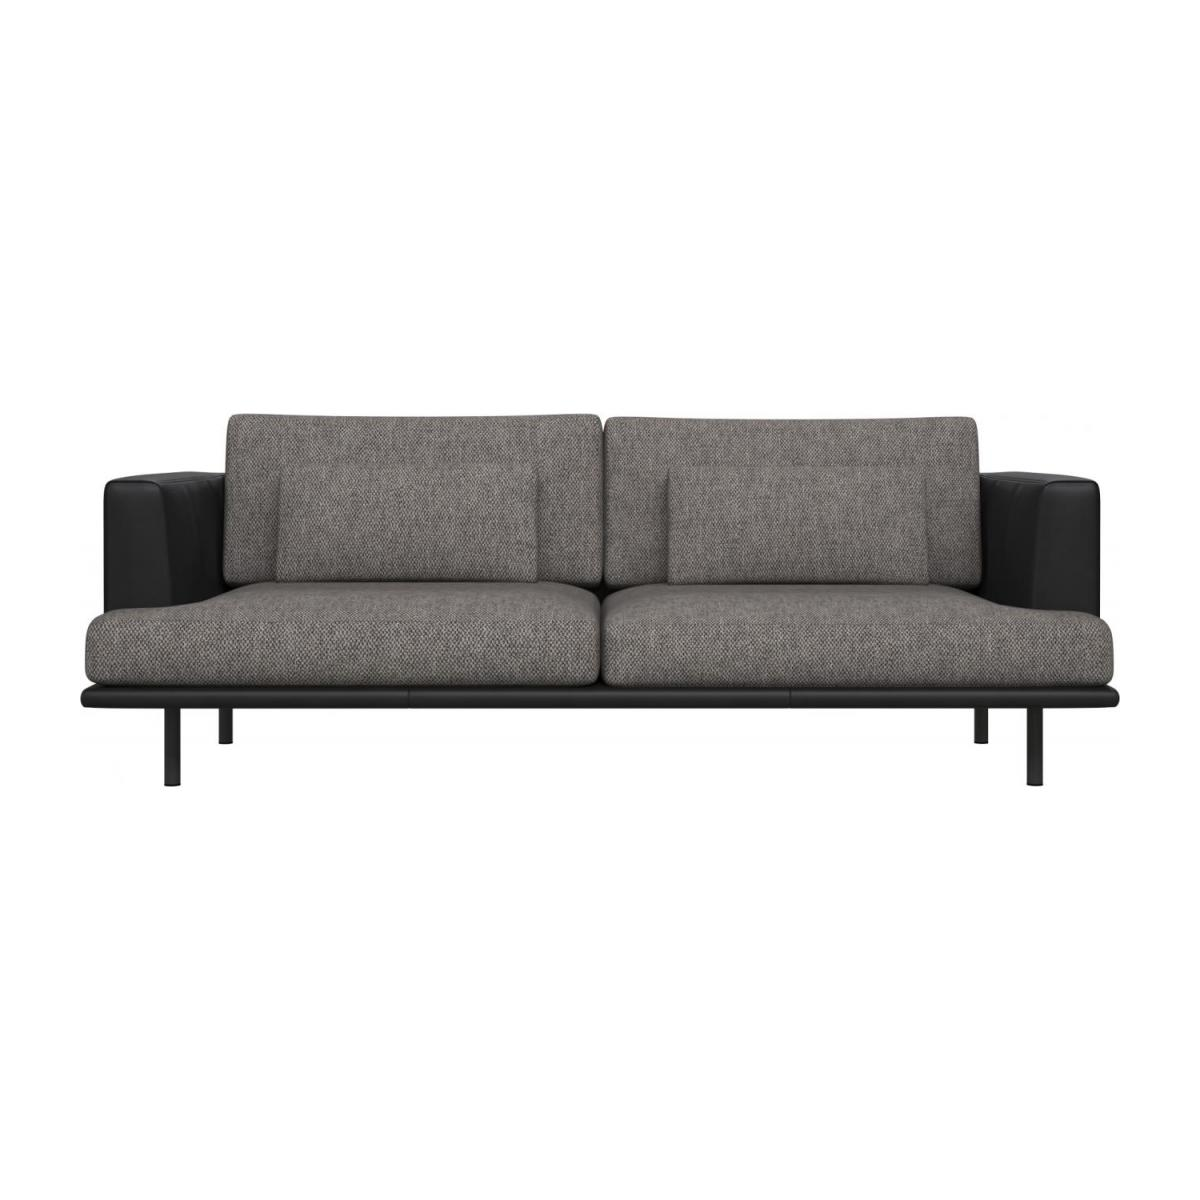 3 seater sofa in Bellagio fabric, night black with base and armrests in black leather n°2